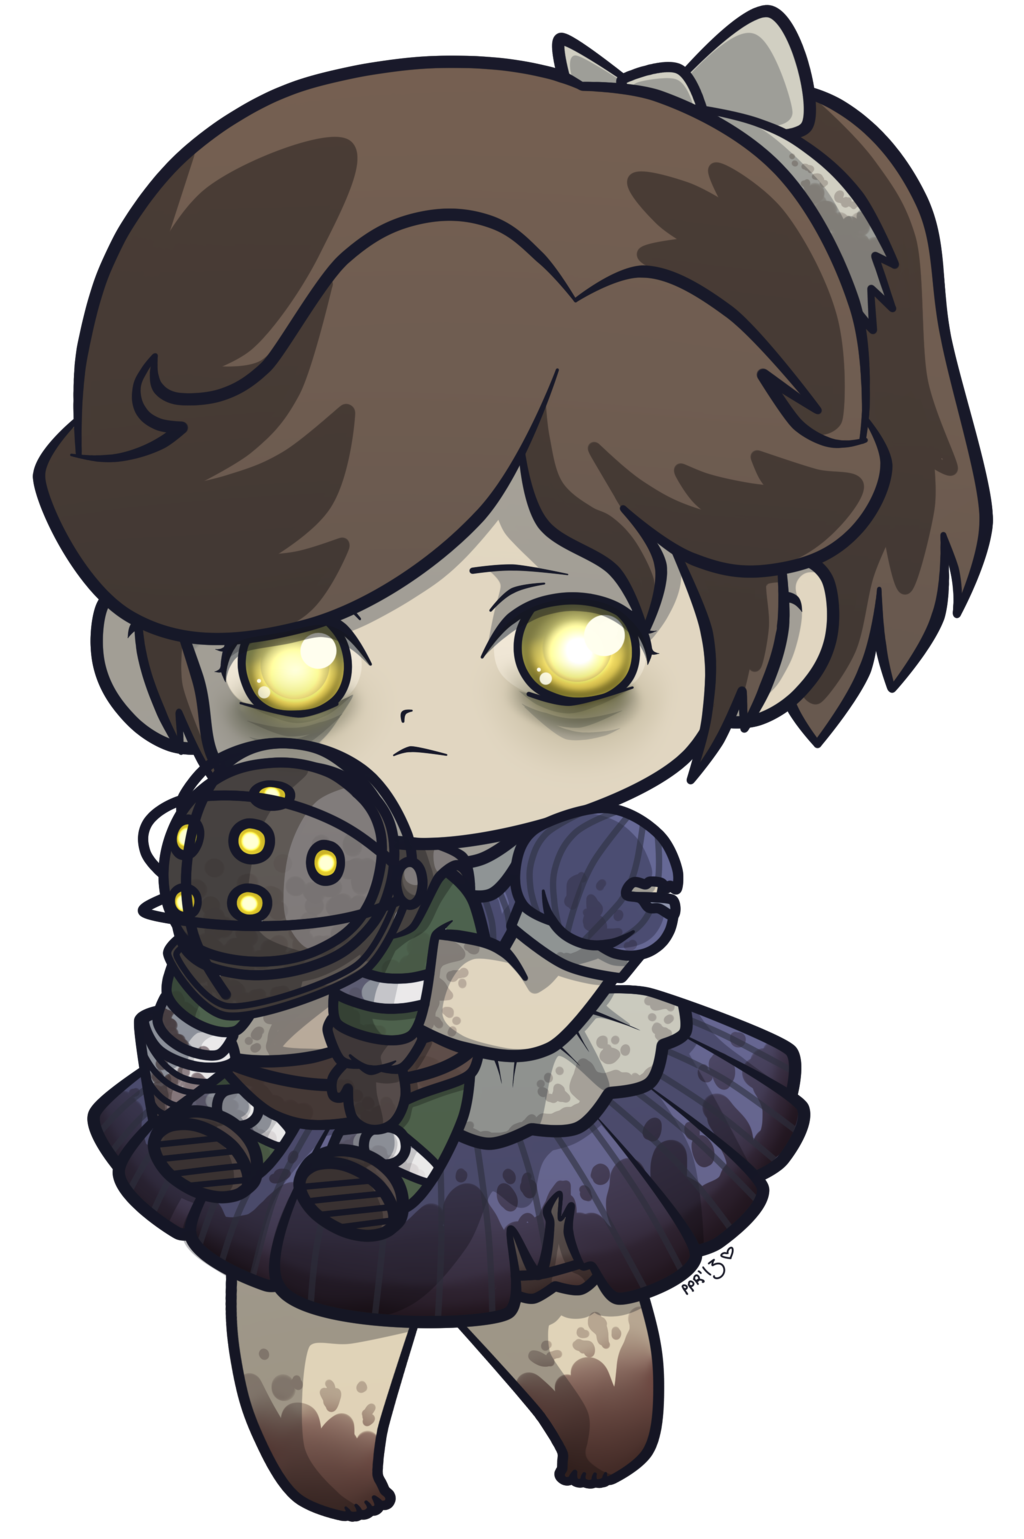 Bioshock drawing. Chibi little sister know